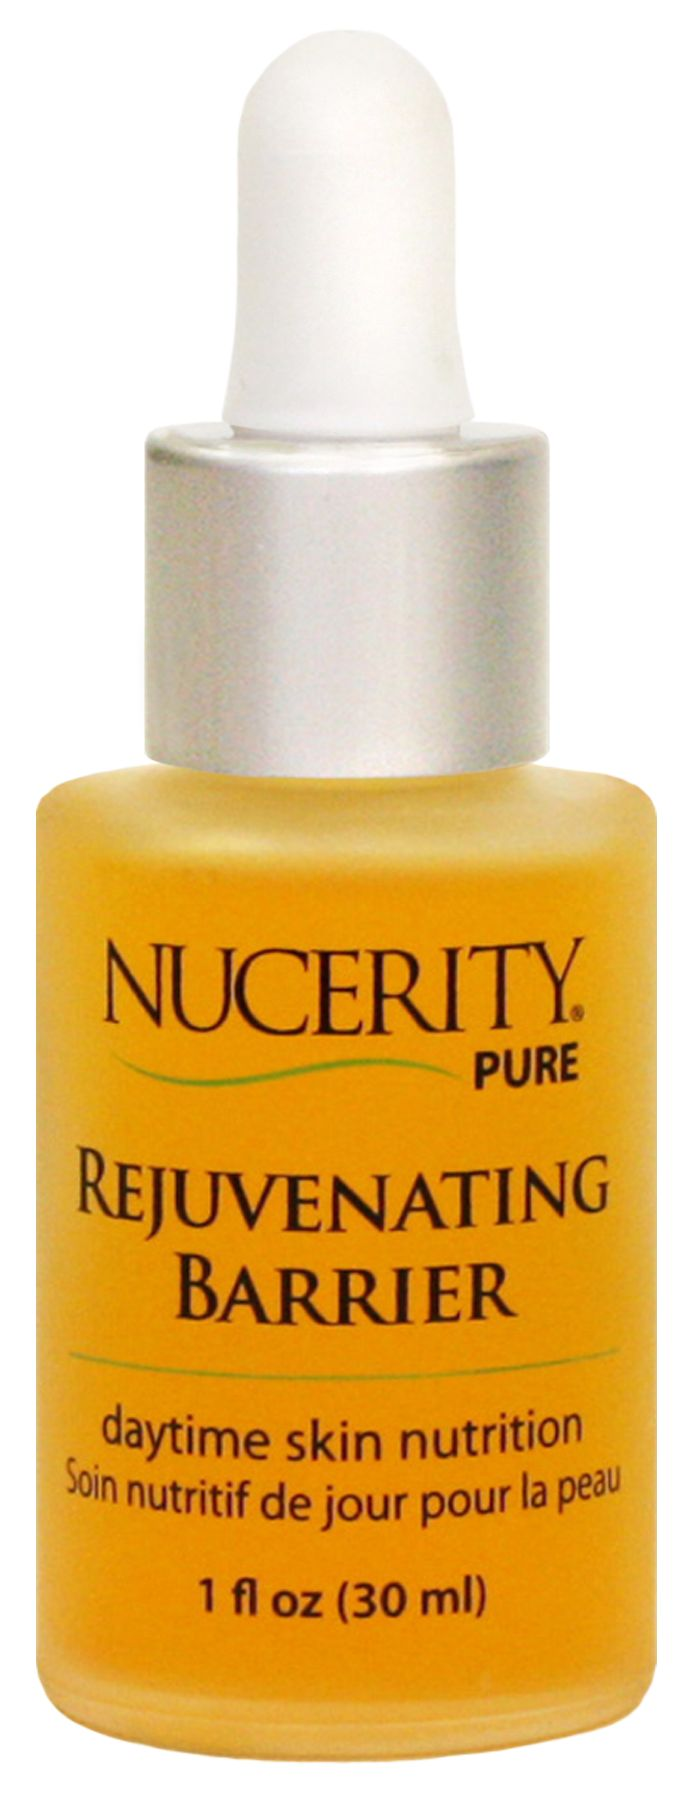 NuCerity Pure's Rejuvenating Barrier is the world's only water-based skin barrier that creates soft, hydrated skin while providing an oil-free barrier of protection. It is the perfect skin hydrating solution for both women and men. www.mynucerity.biz/madonnagott